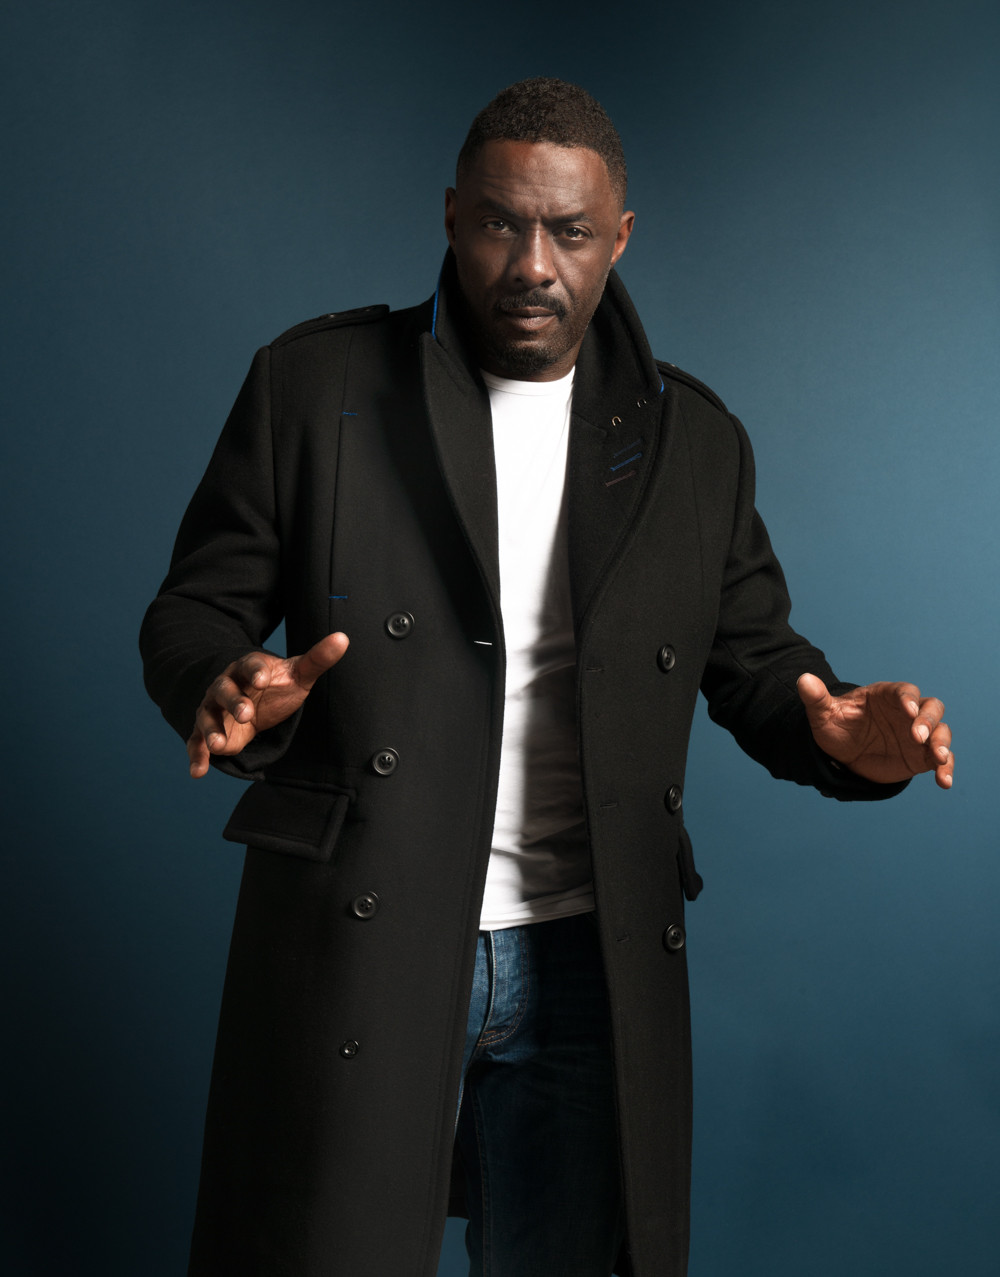 Idris Elba hollywood actor modelling for Superdry against a navy blue background